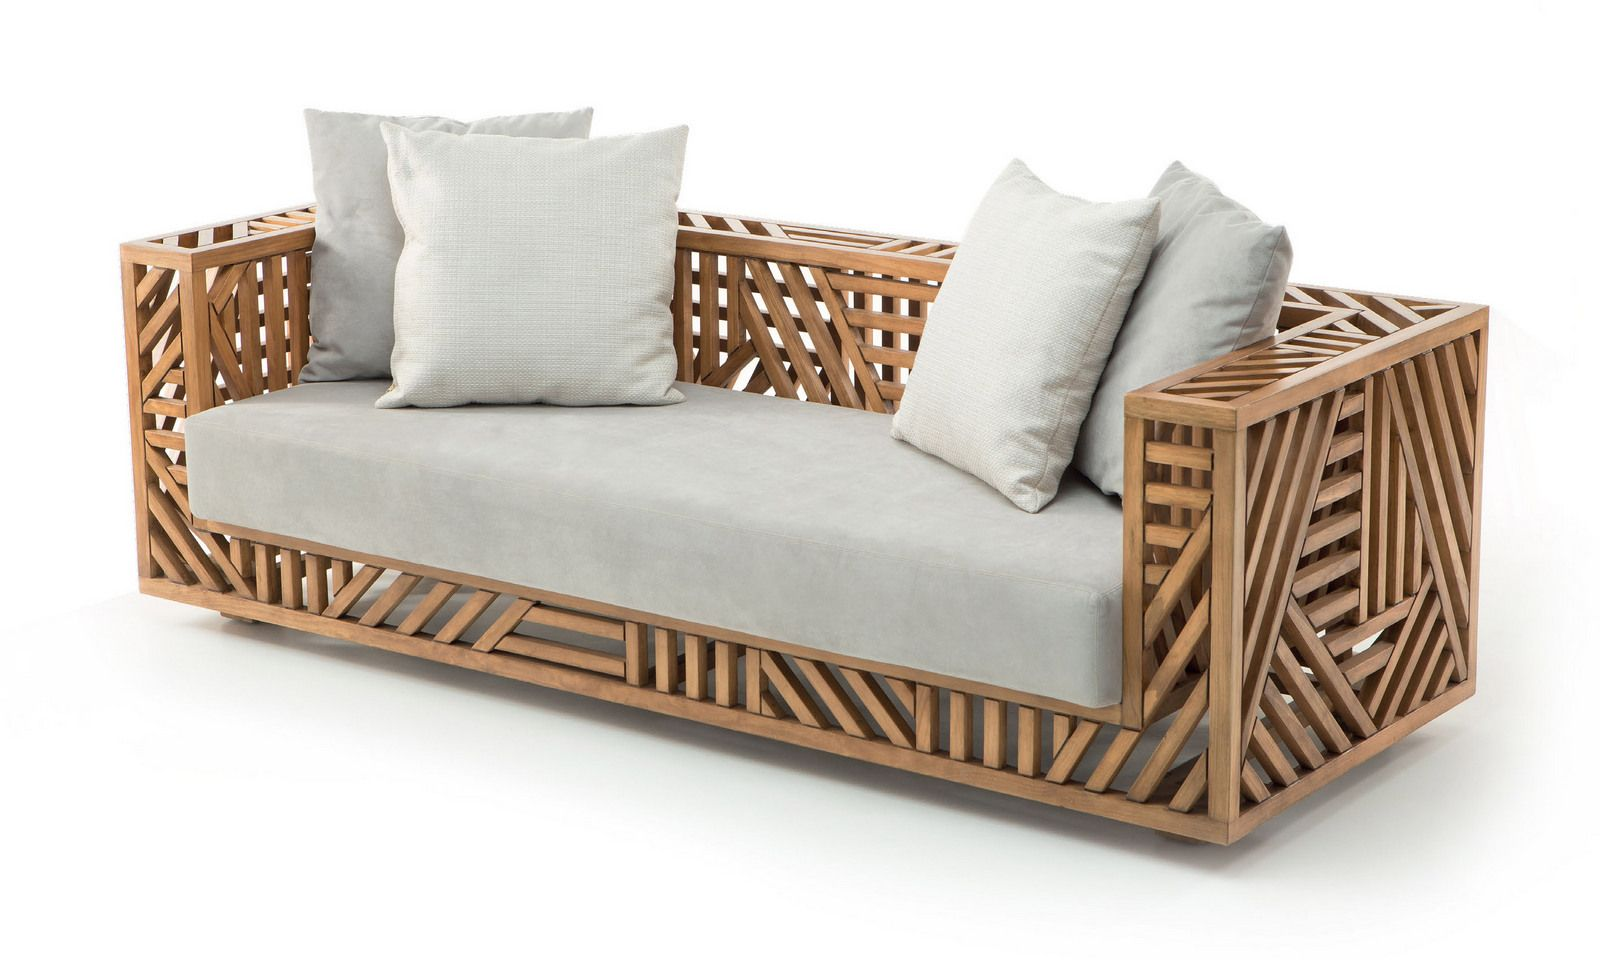 Rattan Sofa Philippines Ari 3 Seater By Vito Selma | Philippine Furniture